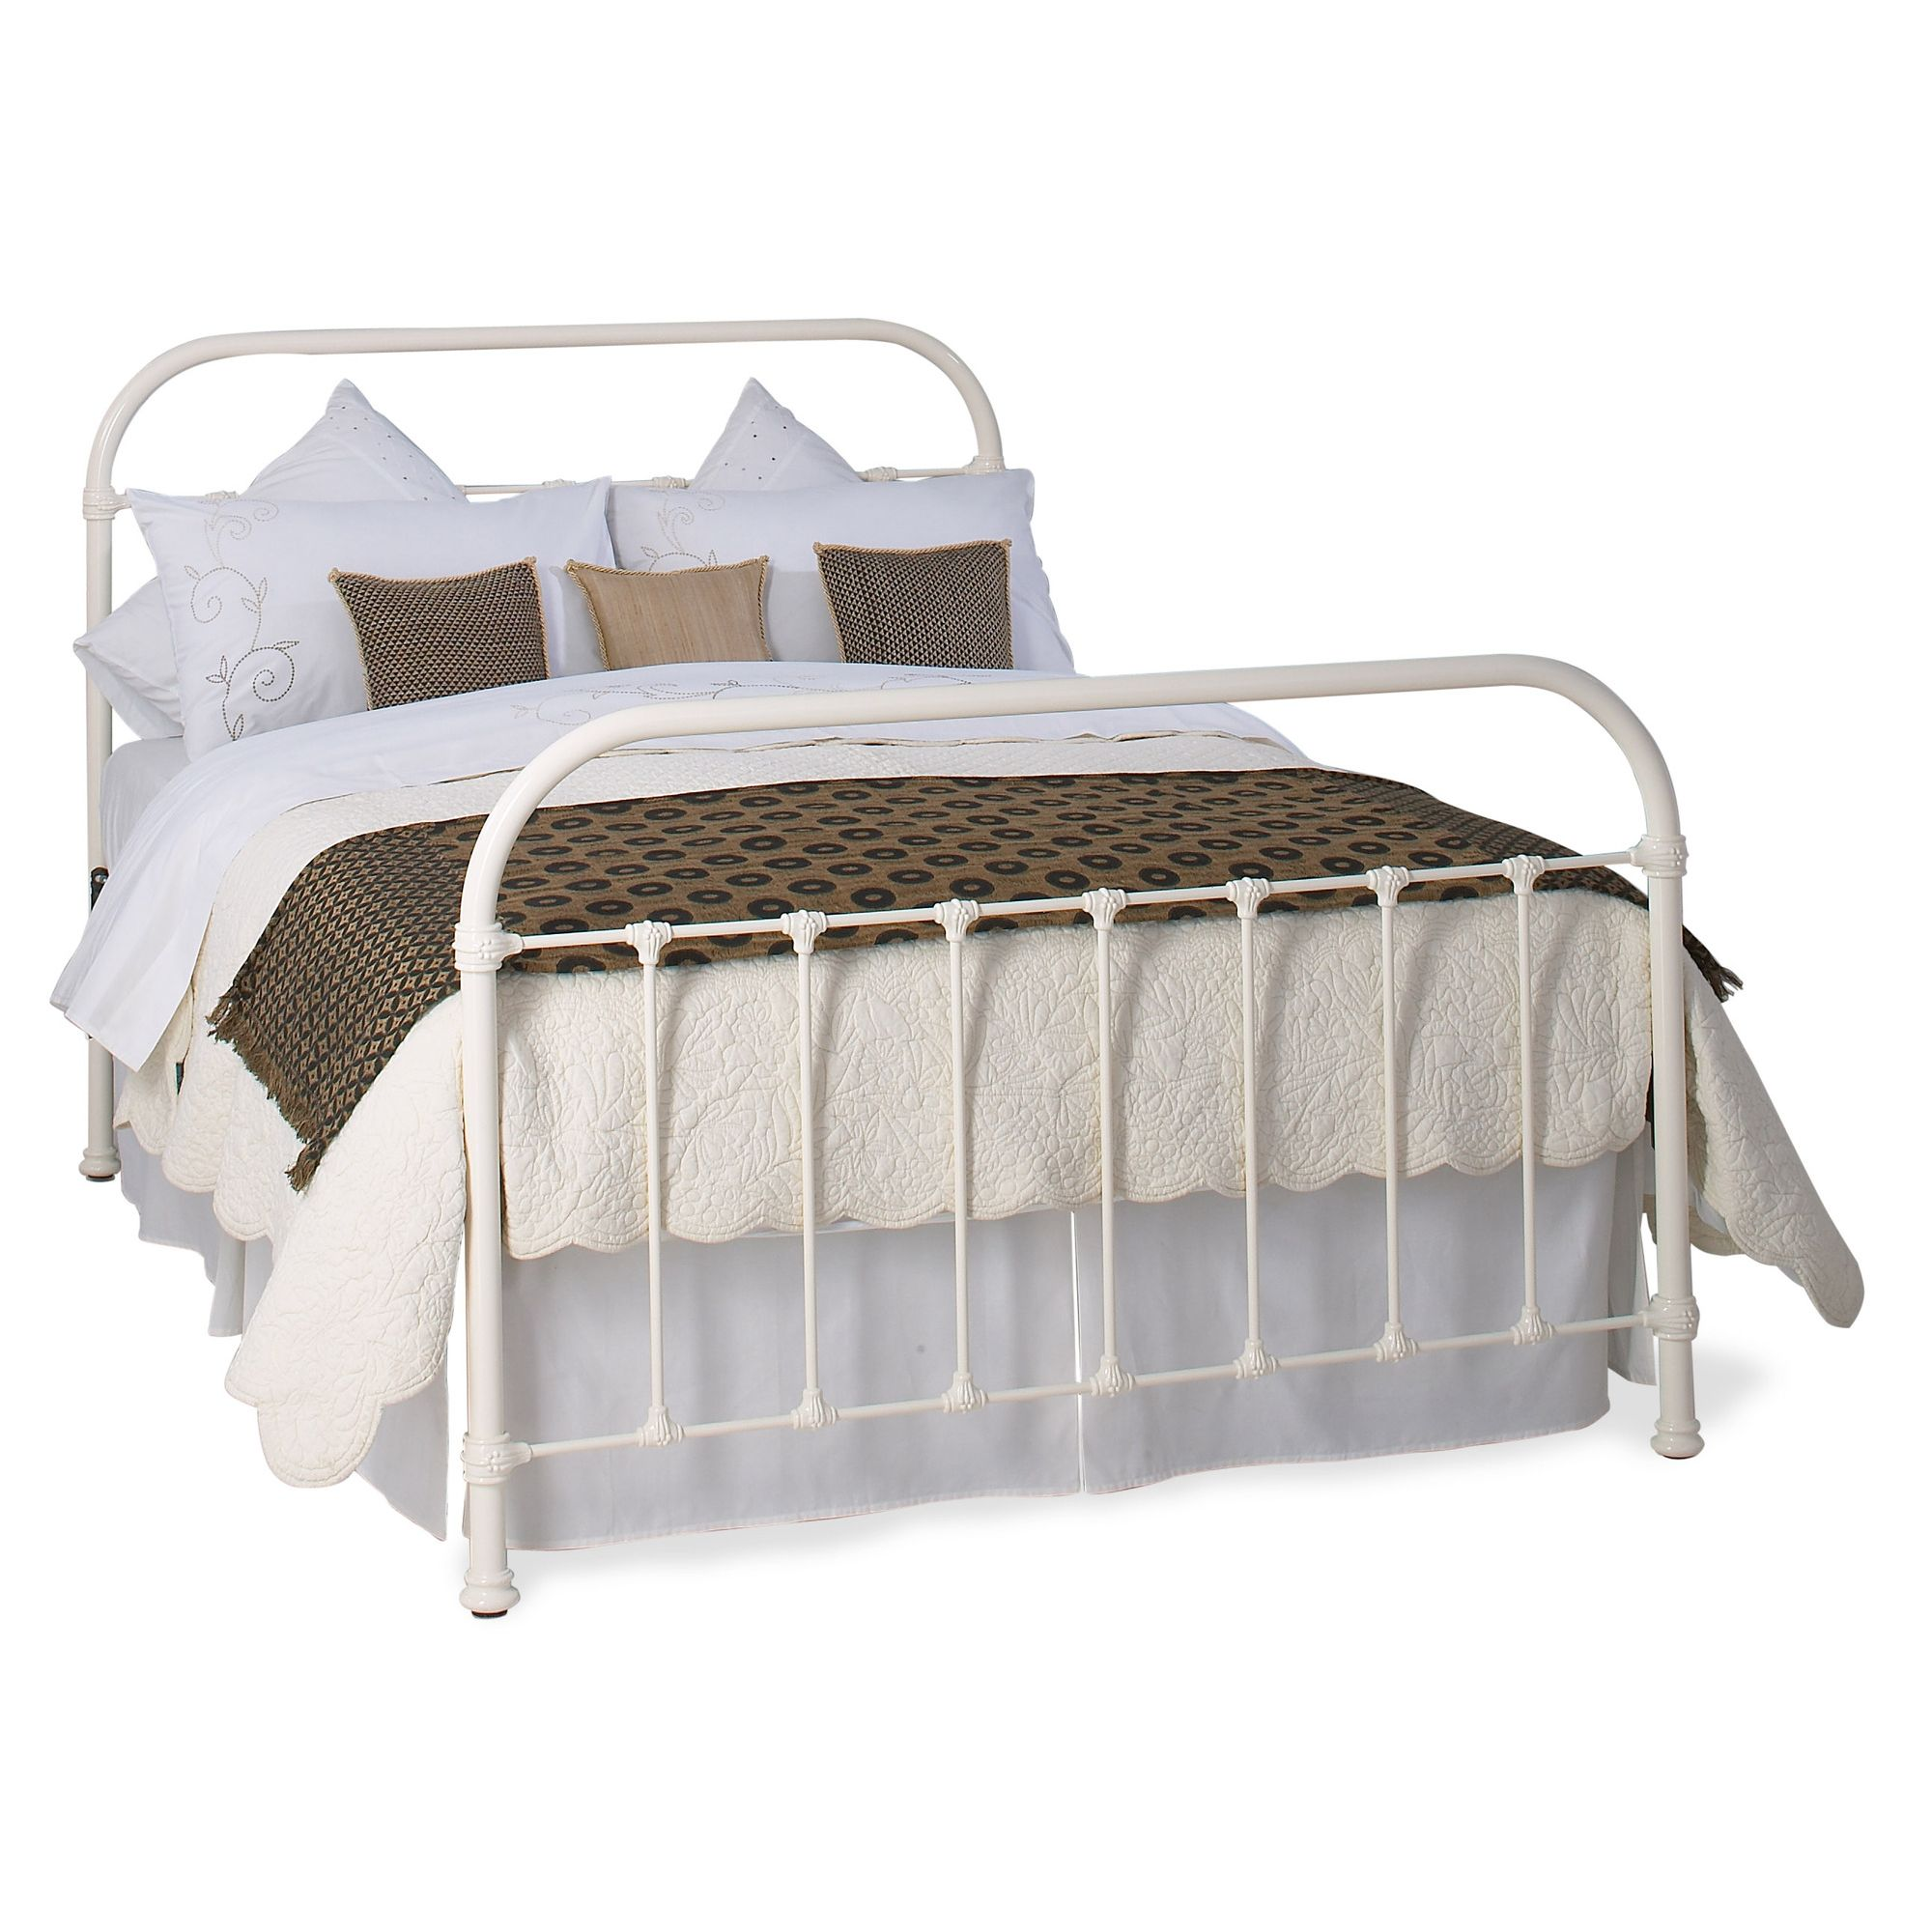 OBC Timolin Bed Frame - Single - Glossy Ivory at Tesco Direct